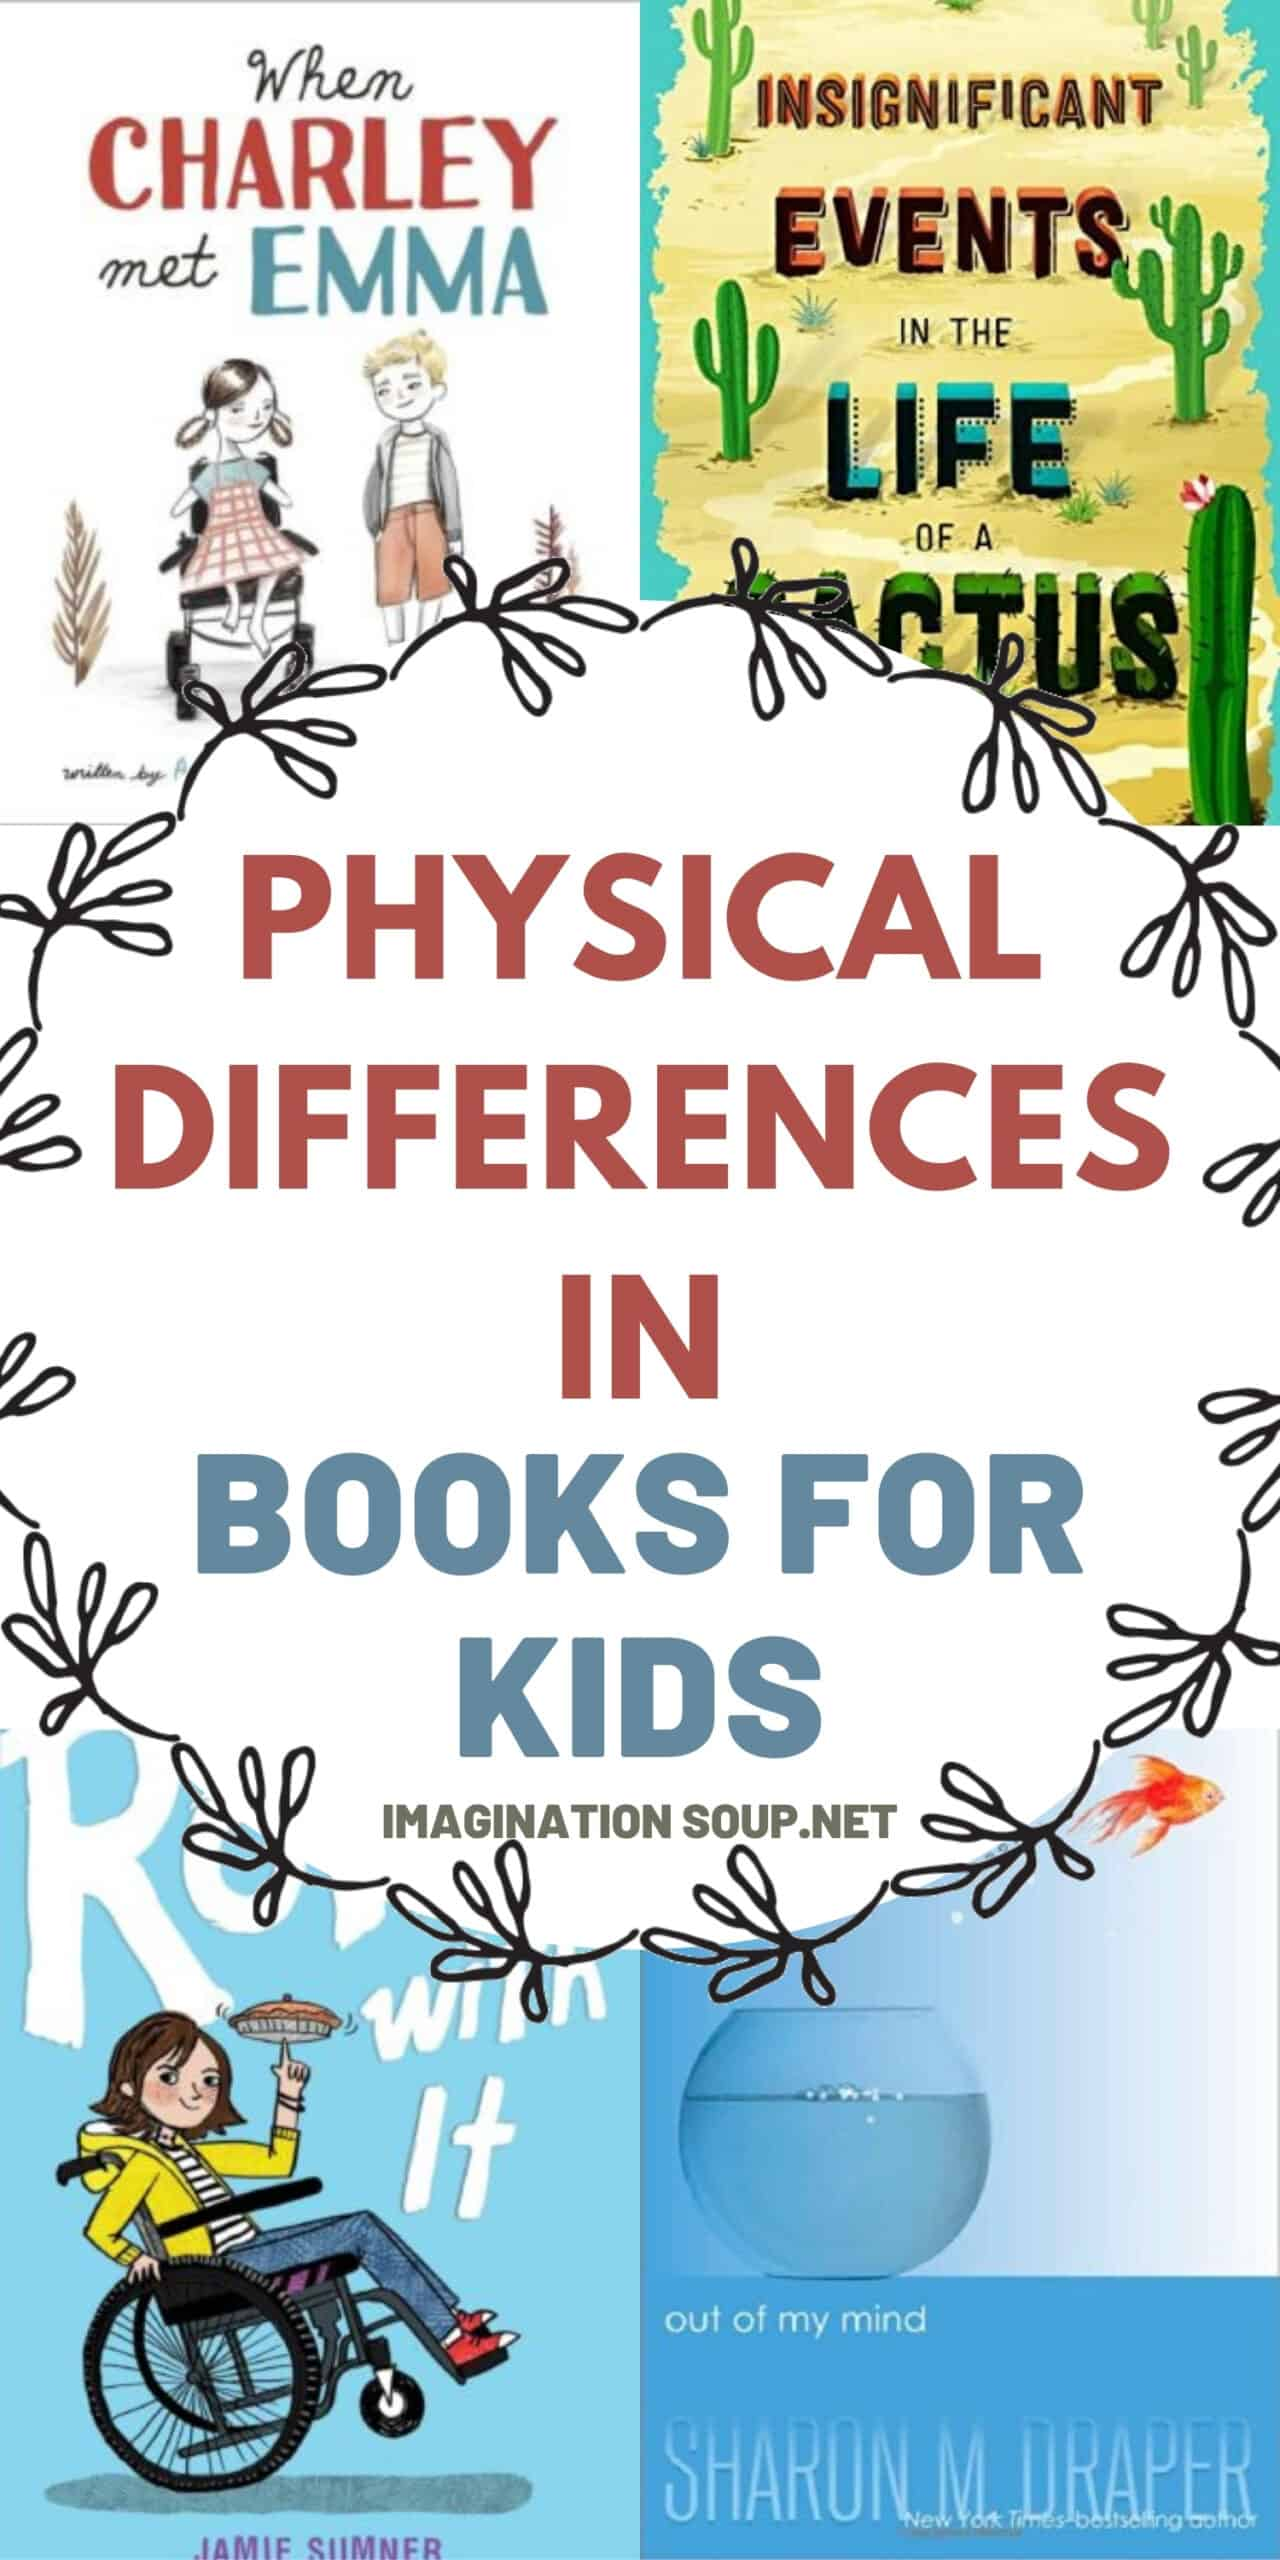 children's books with characters who have physical differences